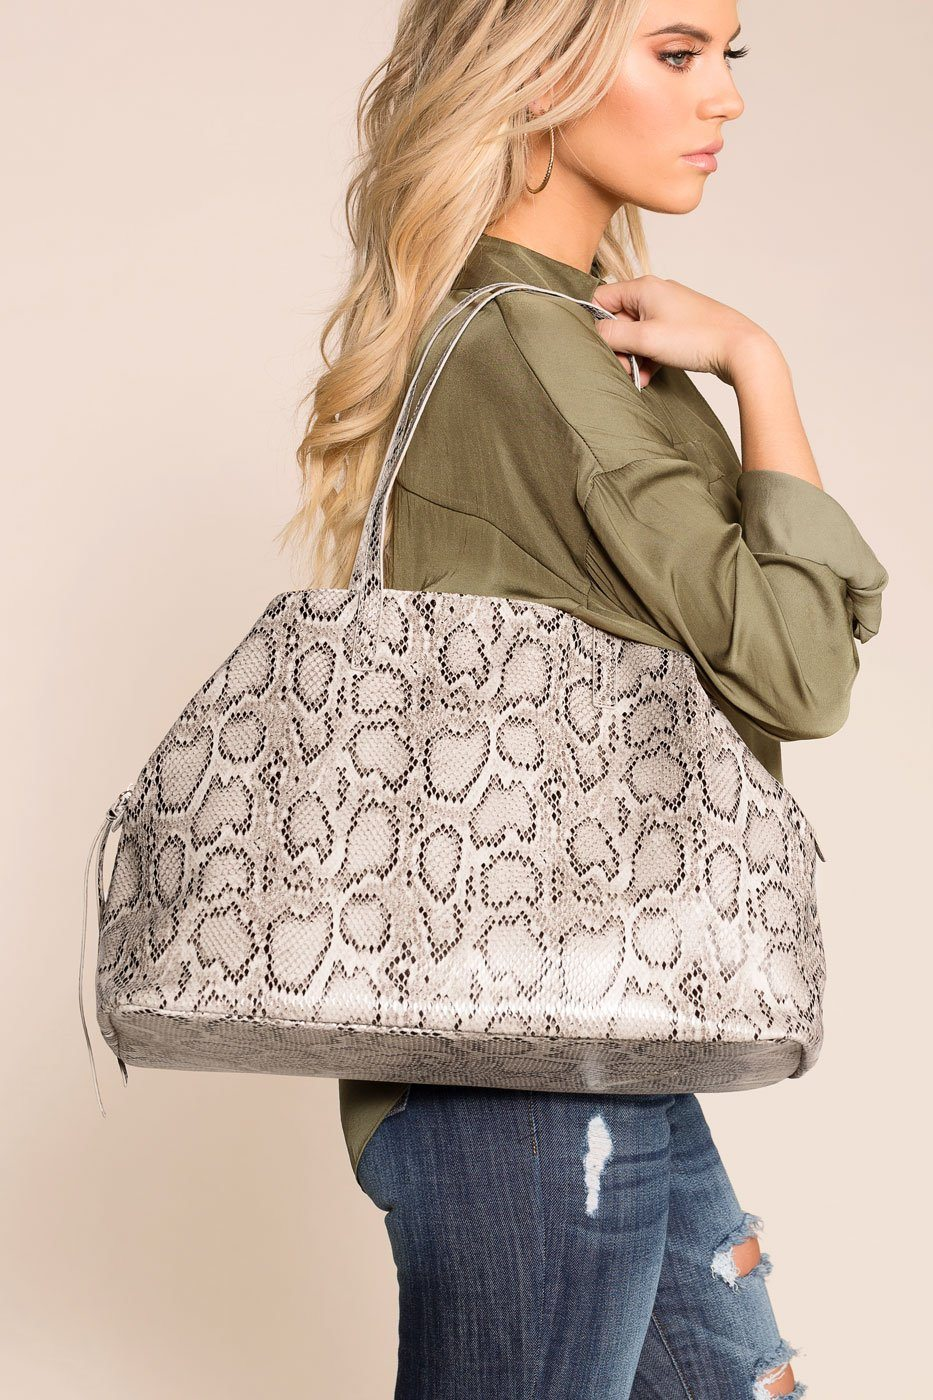 Stylin' White SnakeEmbossed Bag | Shop Priceless